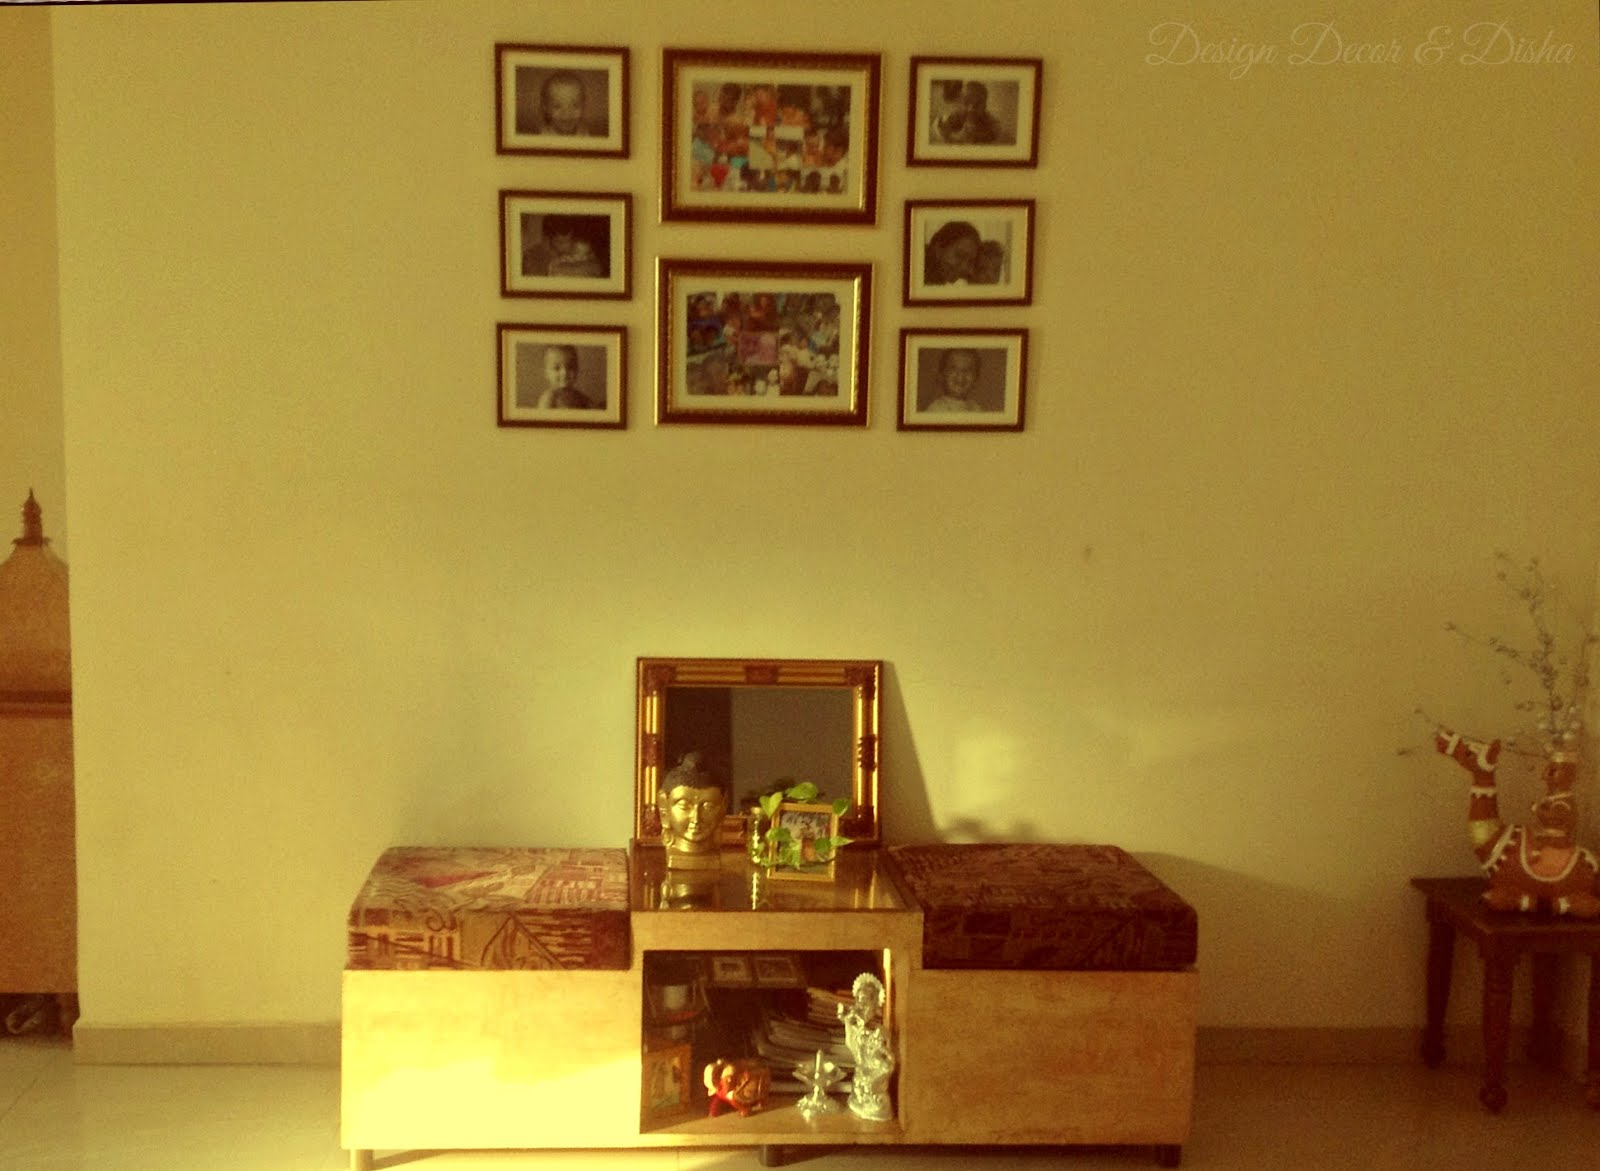 Design Decor & Disha | An Indian Design & Decor Blog: Indian Art ...